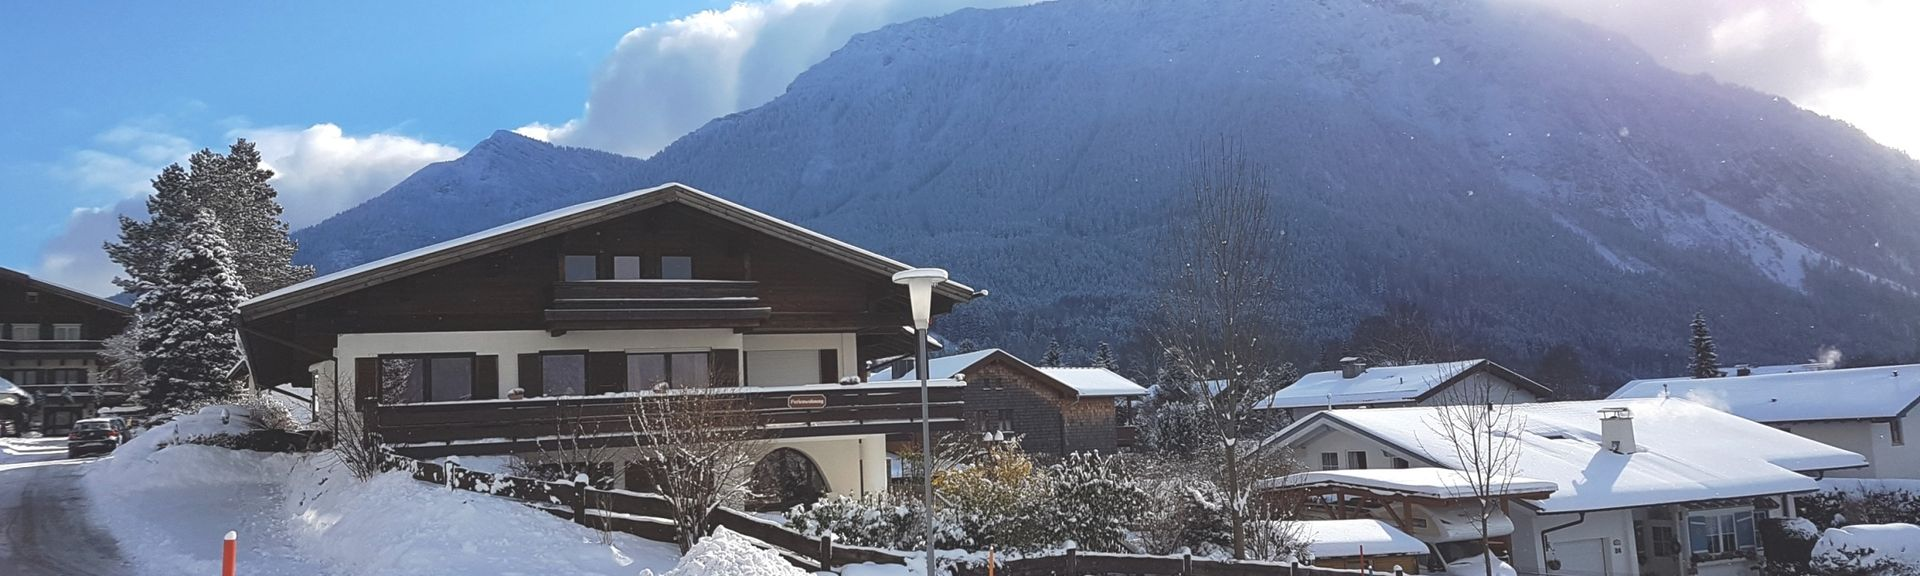 Infang, Ruhpolding, Germany